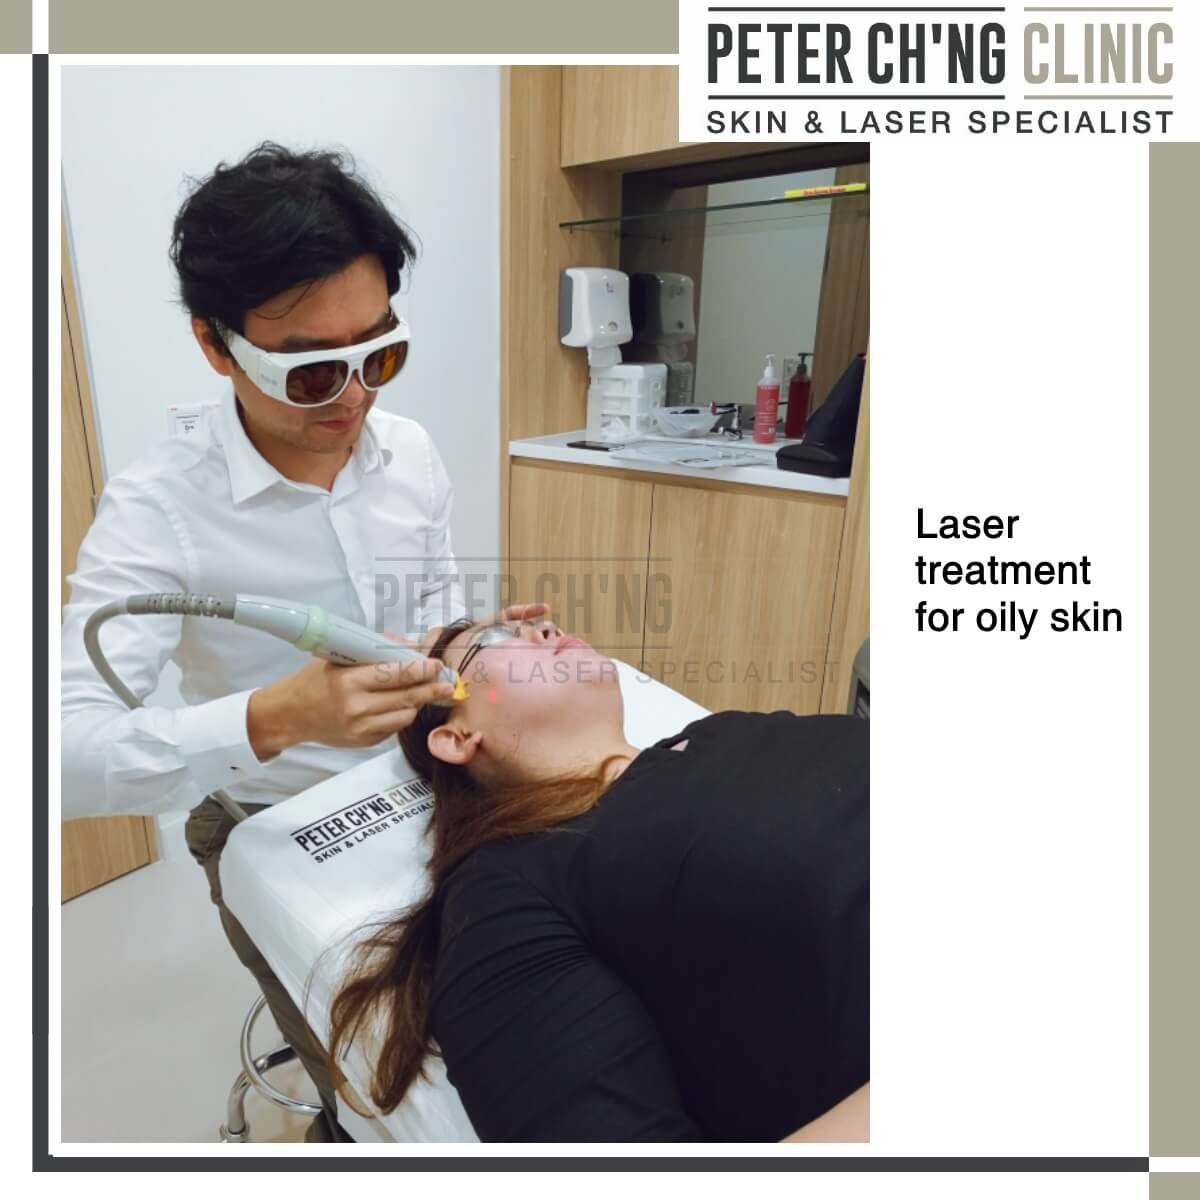 Laser treatment for oily skin